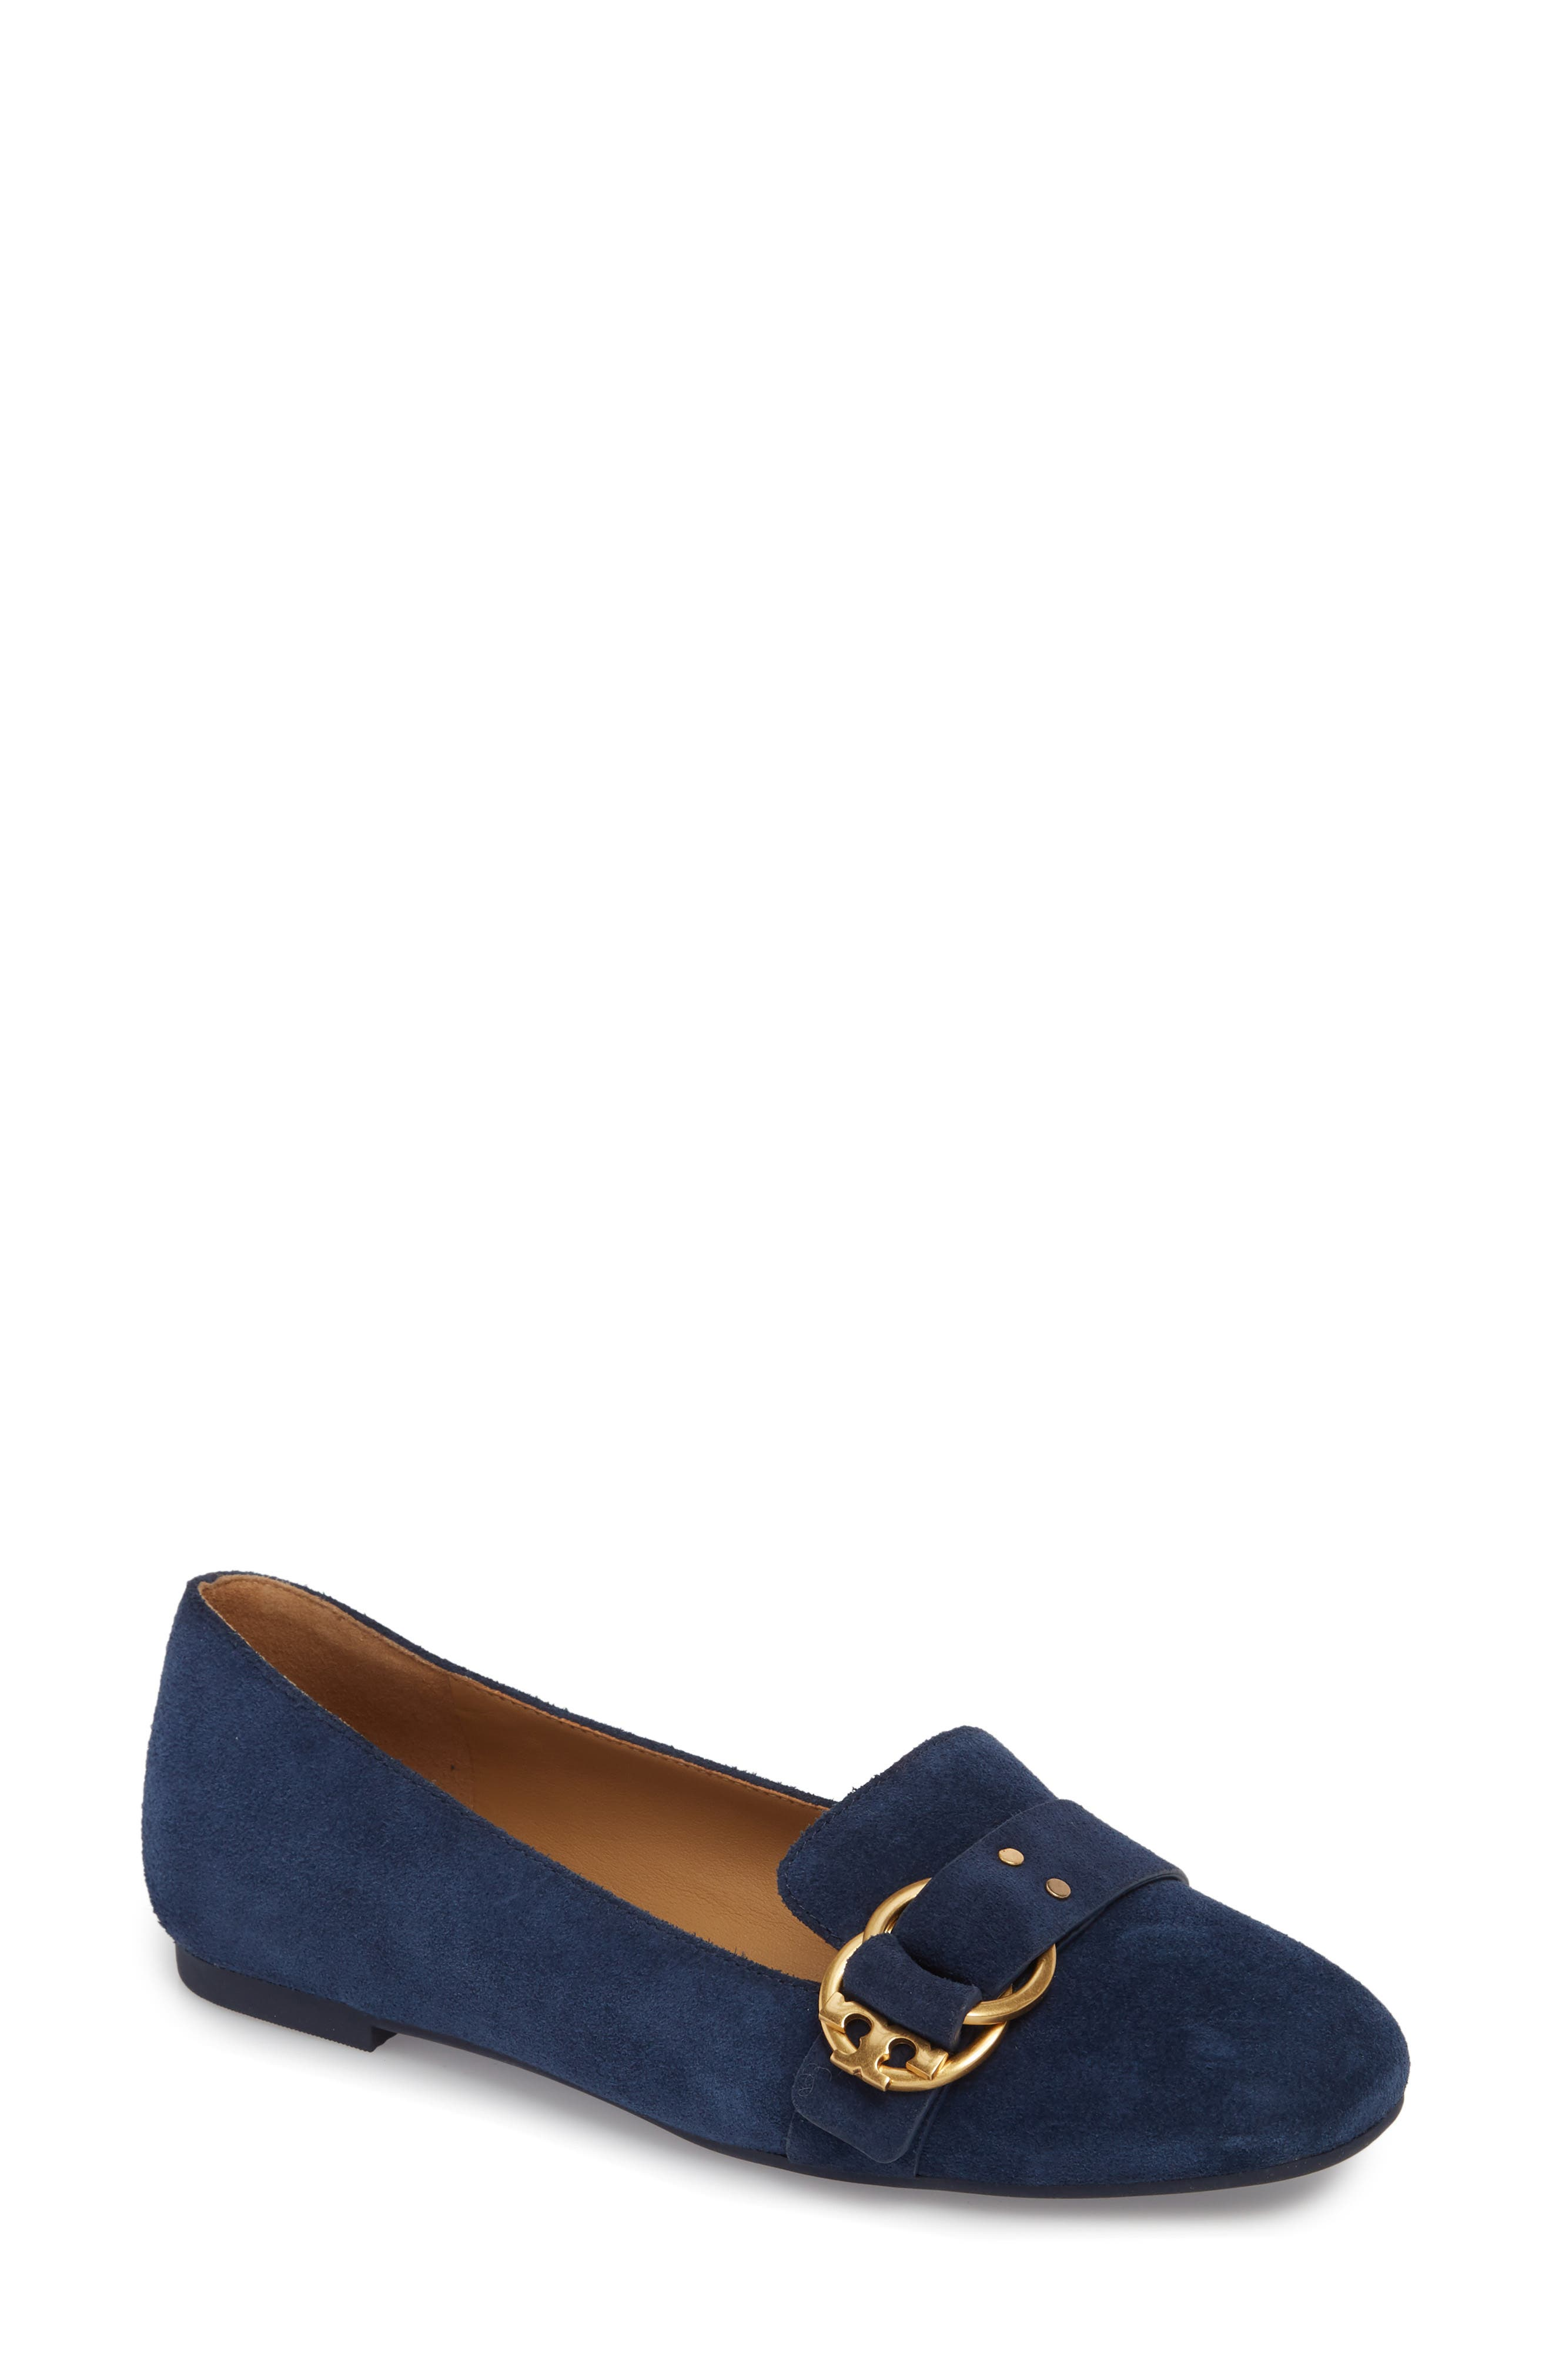 Marsden Loafer,                             Main thumbnail 1, color,                             PERFECT NAVY